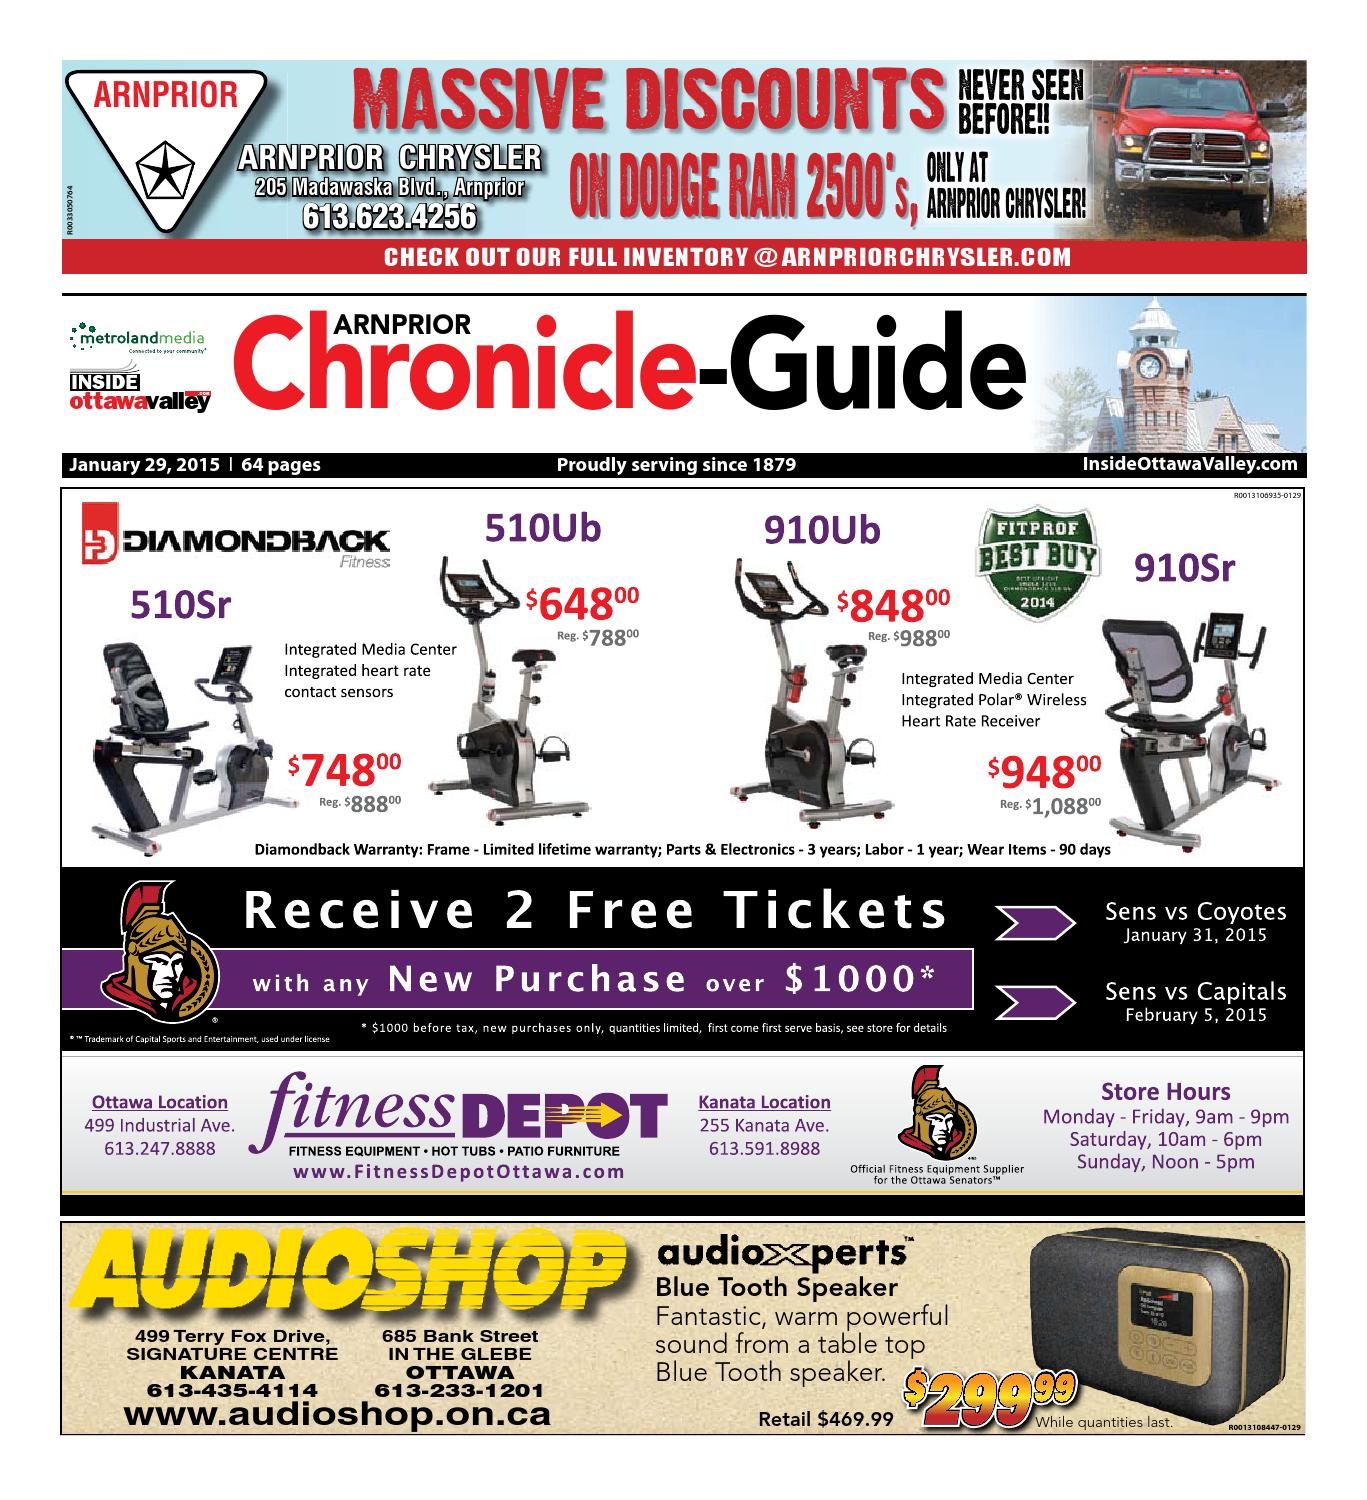 0dedc20c2f Arnprior012915 by Metroland East - Arnprior Chronicle-Guide - issuu